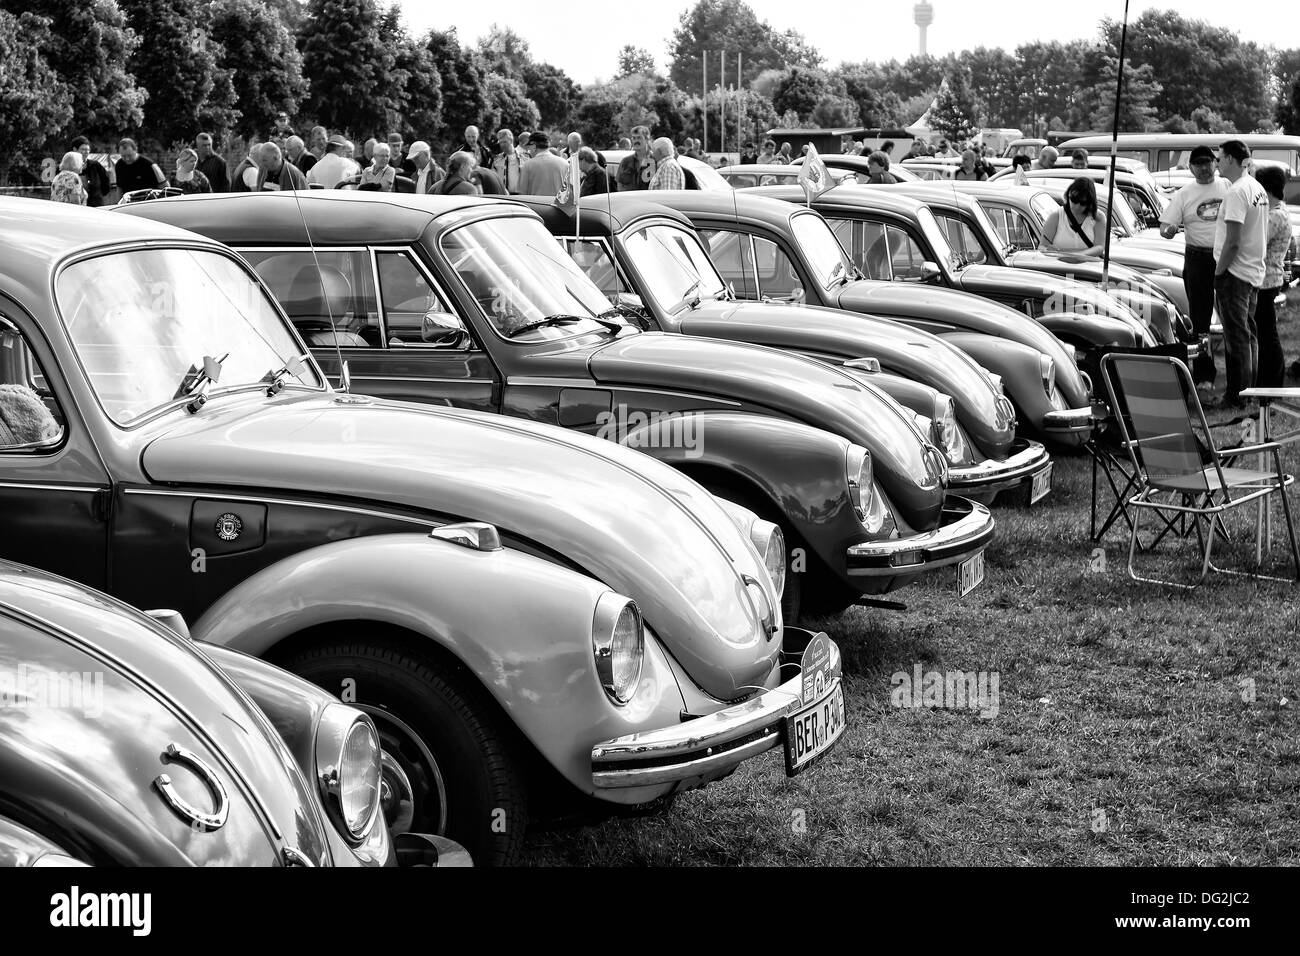 he Several cars Volkswagen Beetle (black and white) - Stock Image